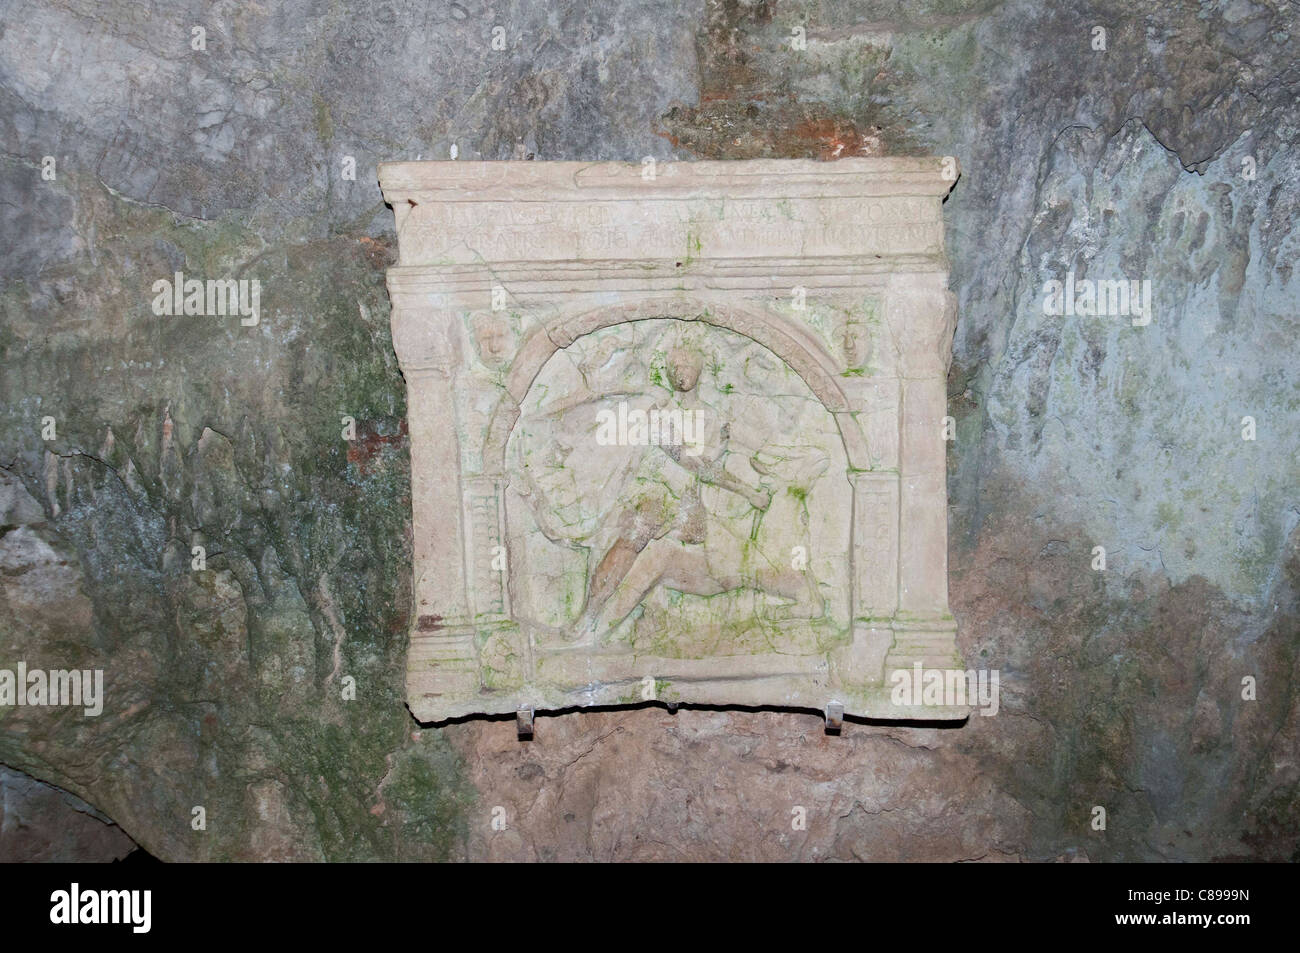 The Duino Mithraeum areological site - Stock Image